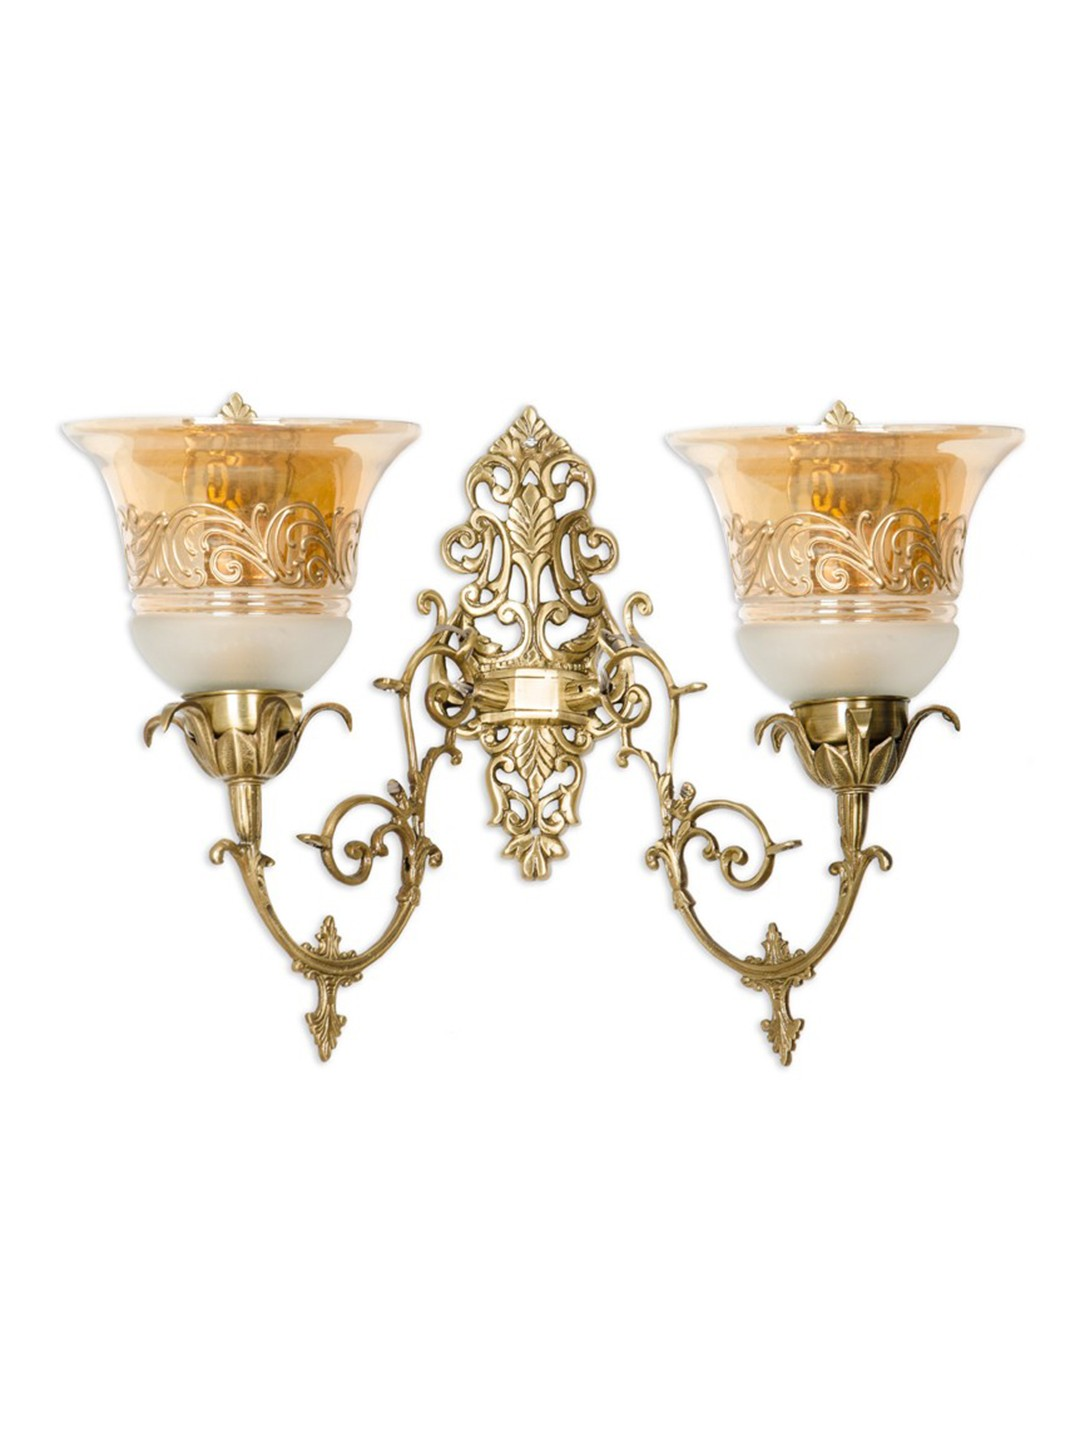 Ornate Cast Brass Double Lustrous Wall Sconce